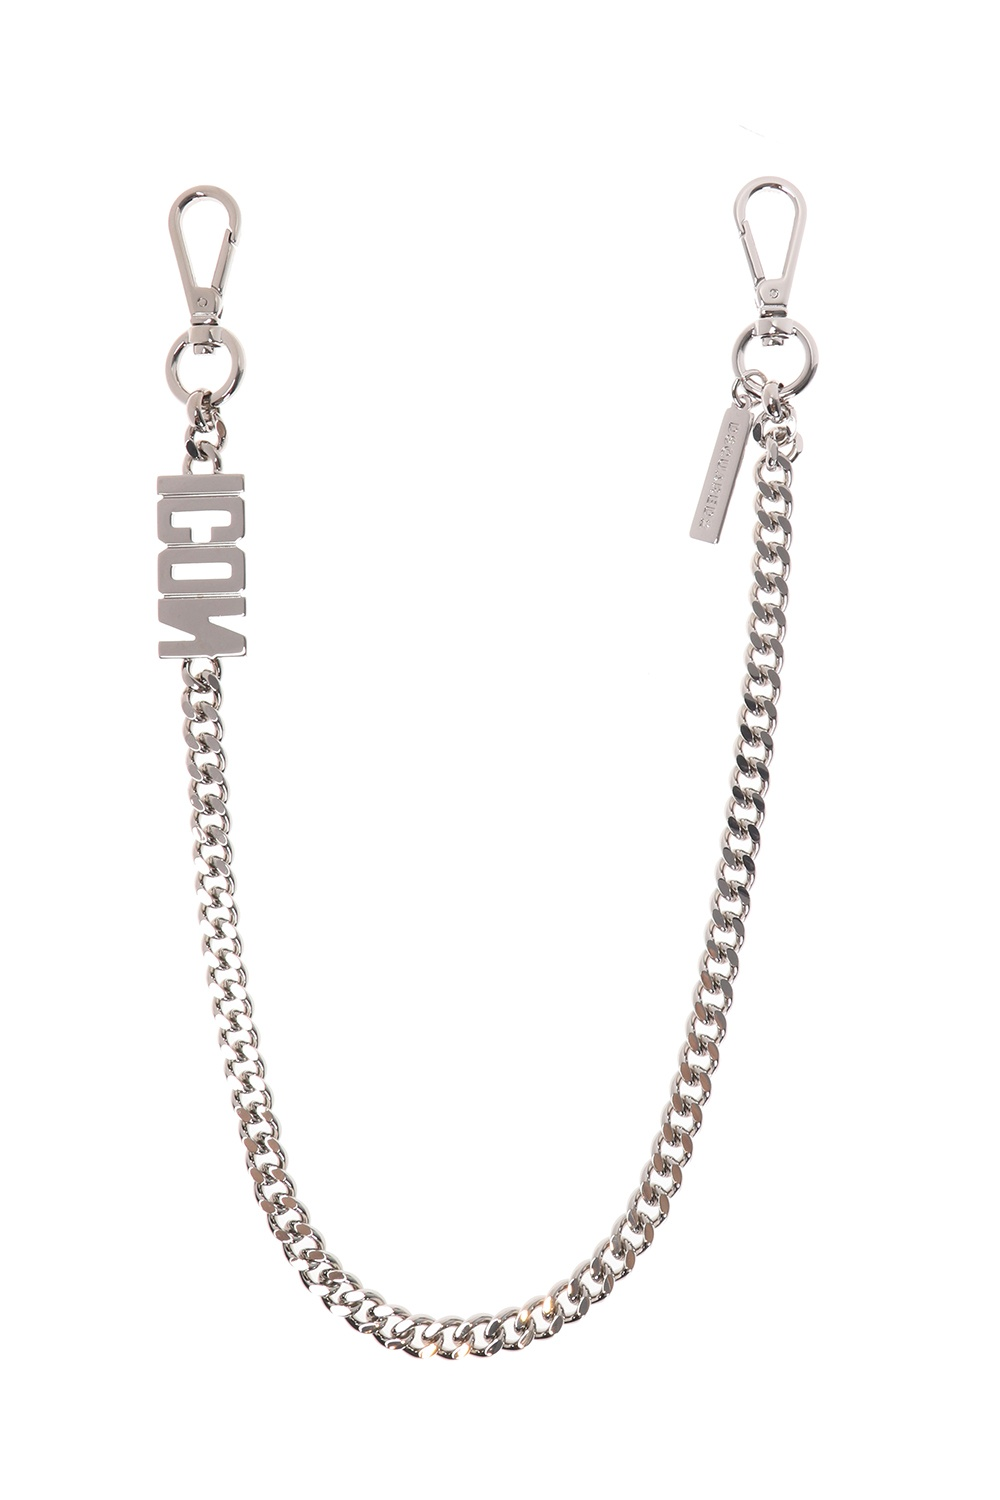 Dsquared2 Trouser charm